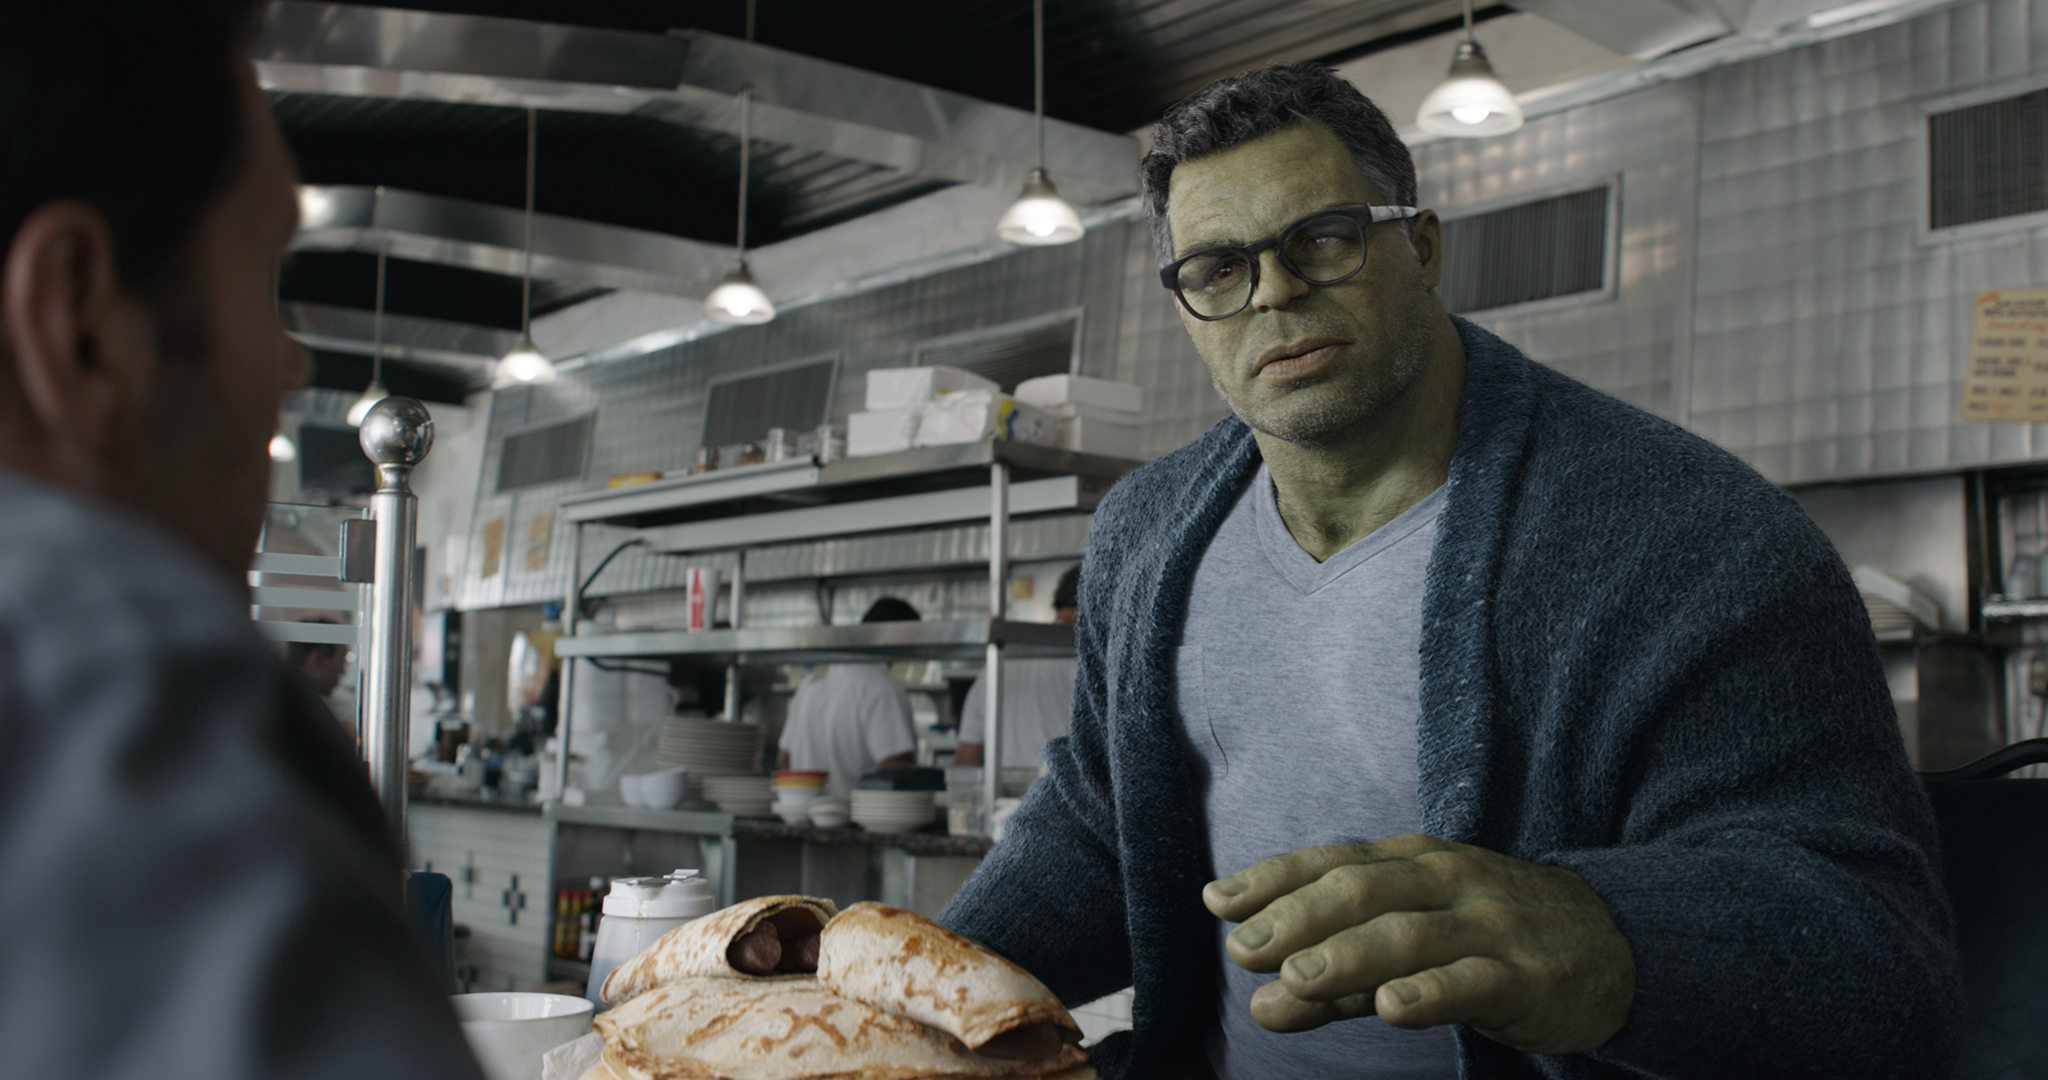 Mark Ruffalo as Hulk in Avengers: Endgame